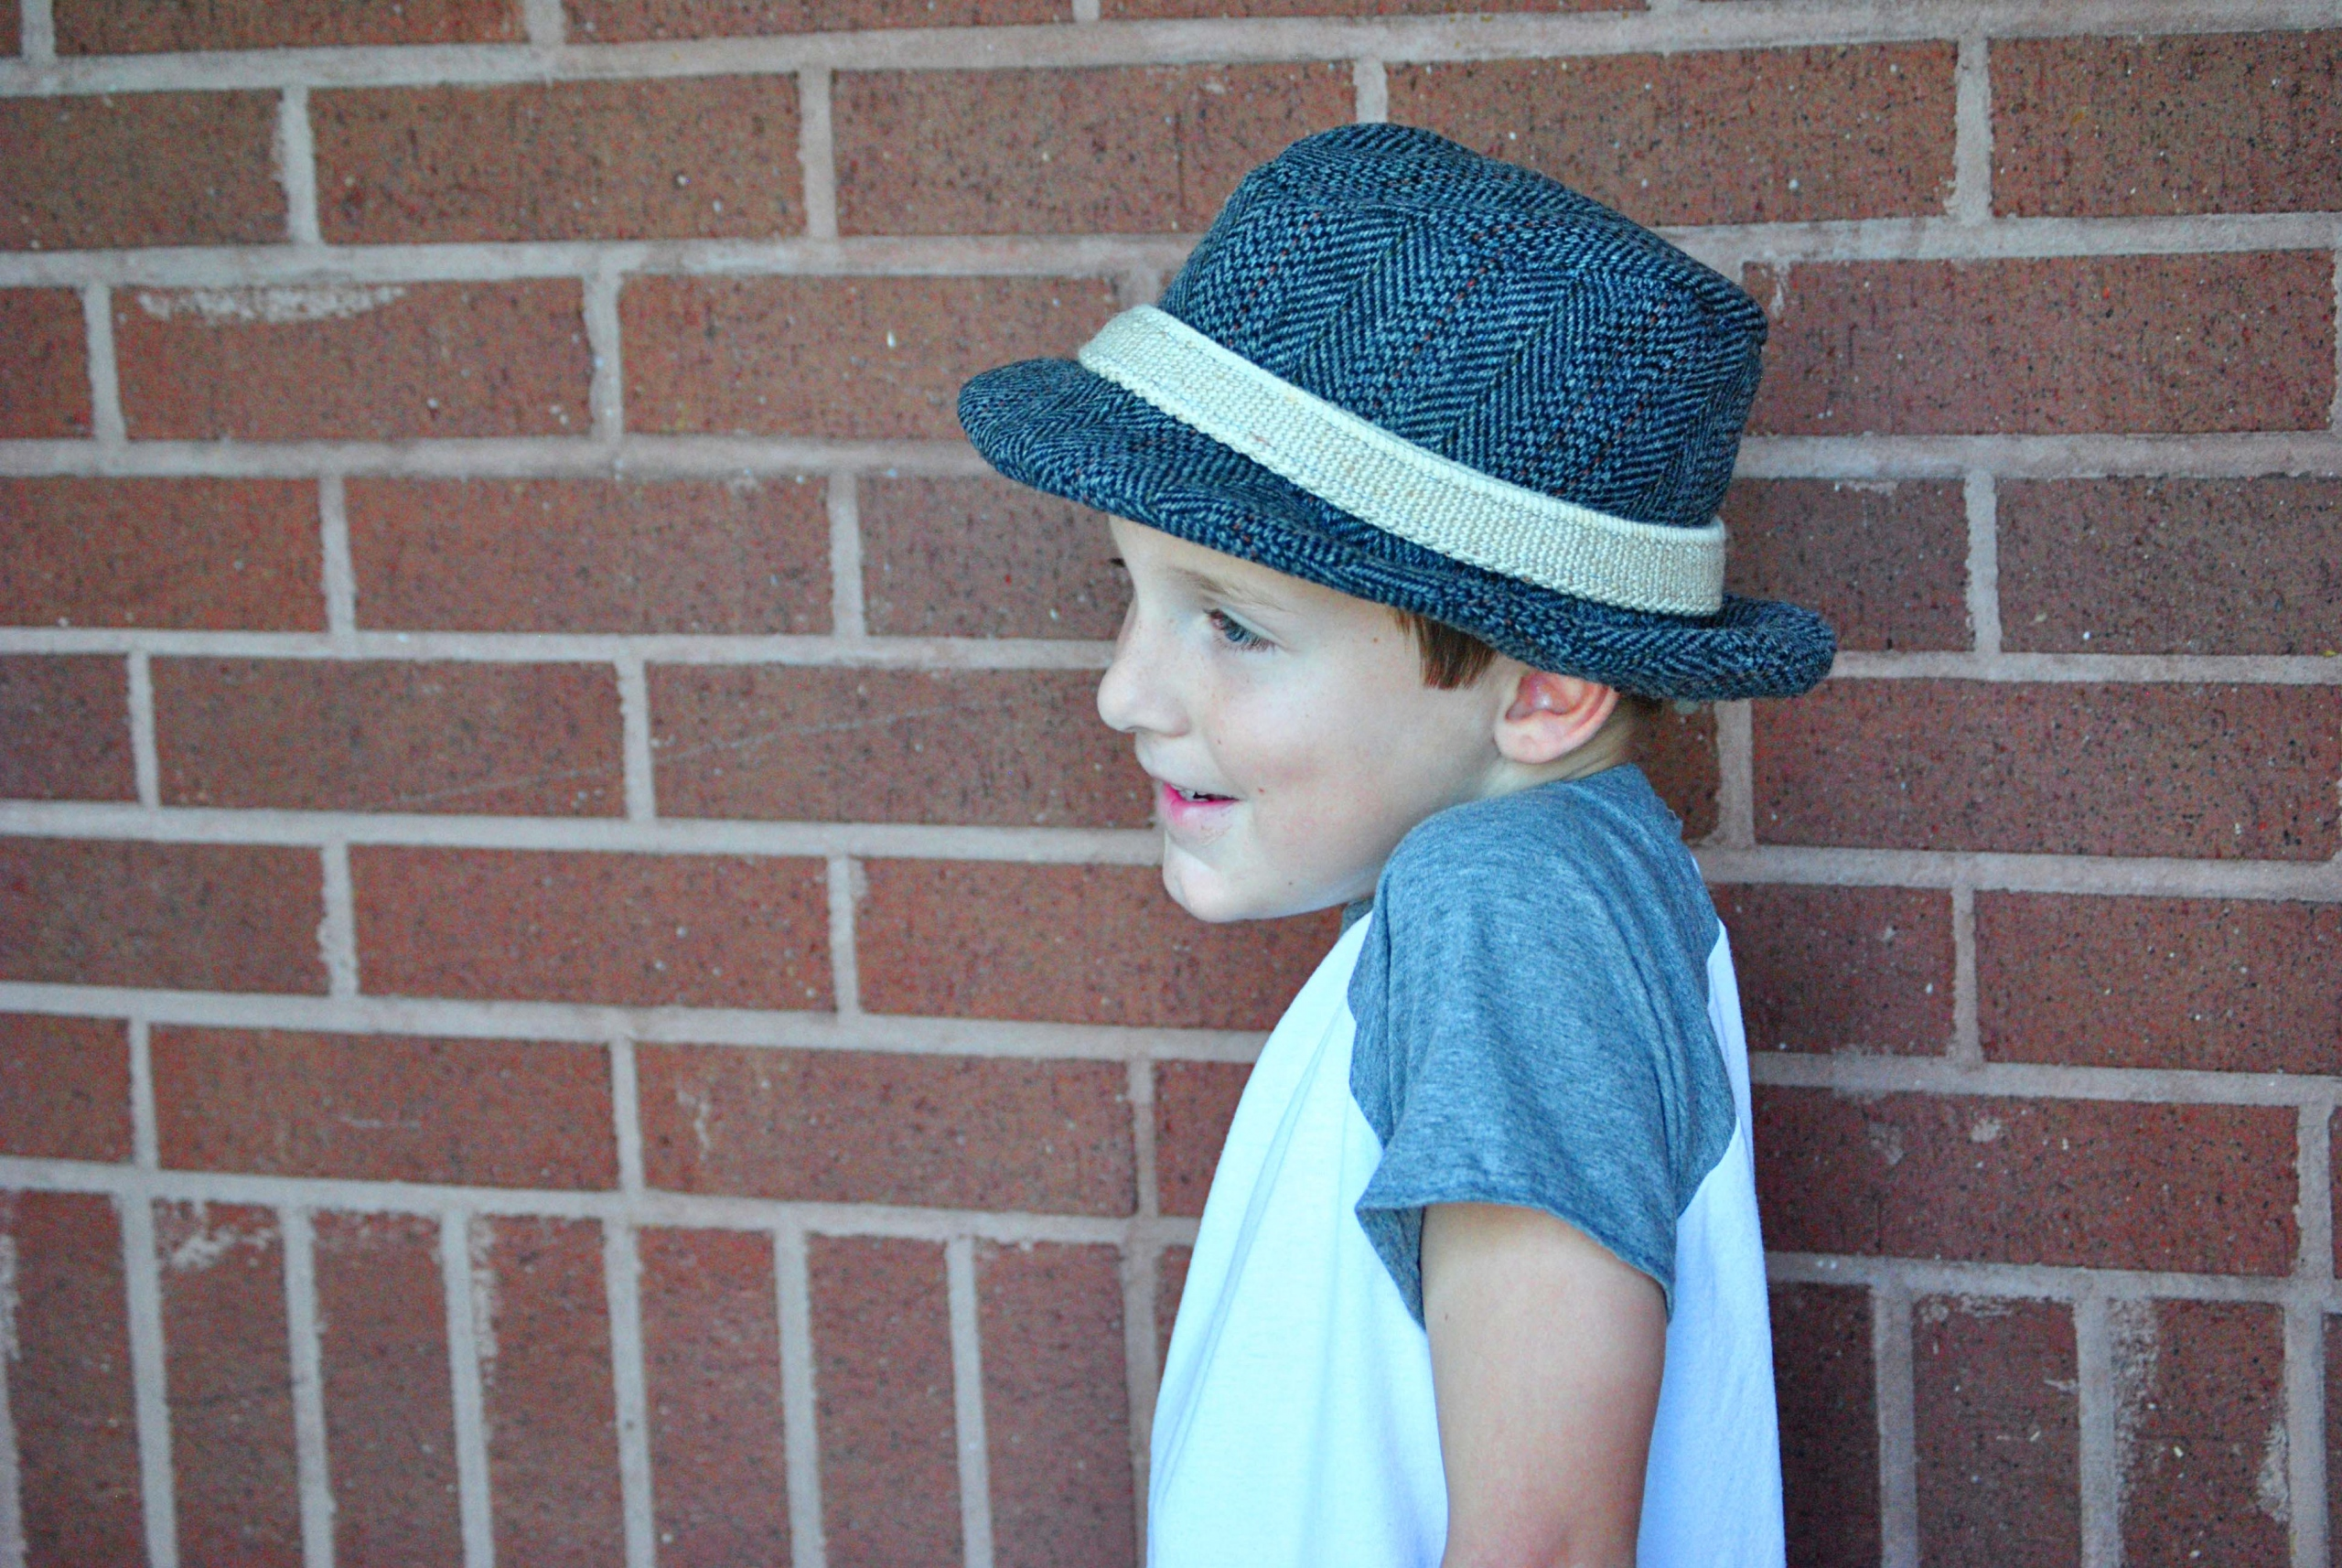 Boy's Fedora Hats Online: A Brilliant Way To Make You Look Stylish and Elegant